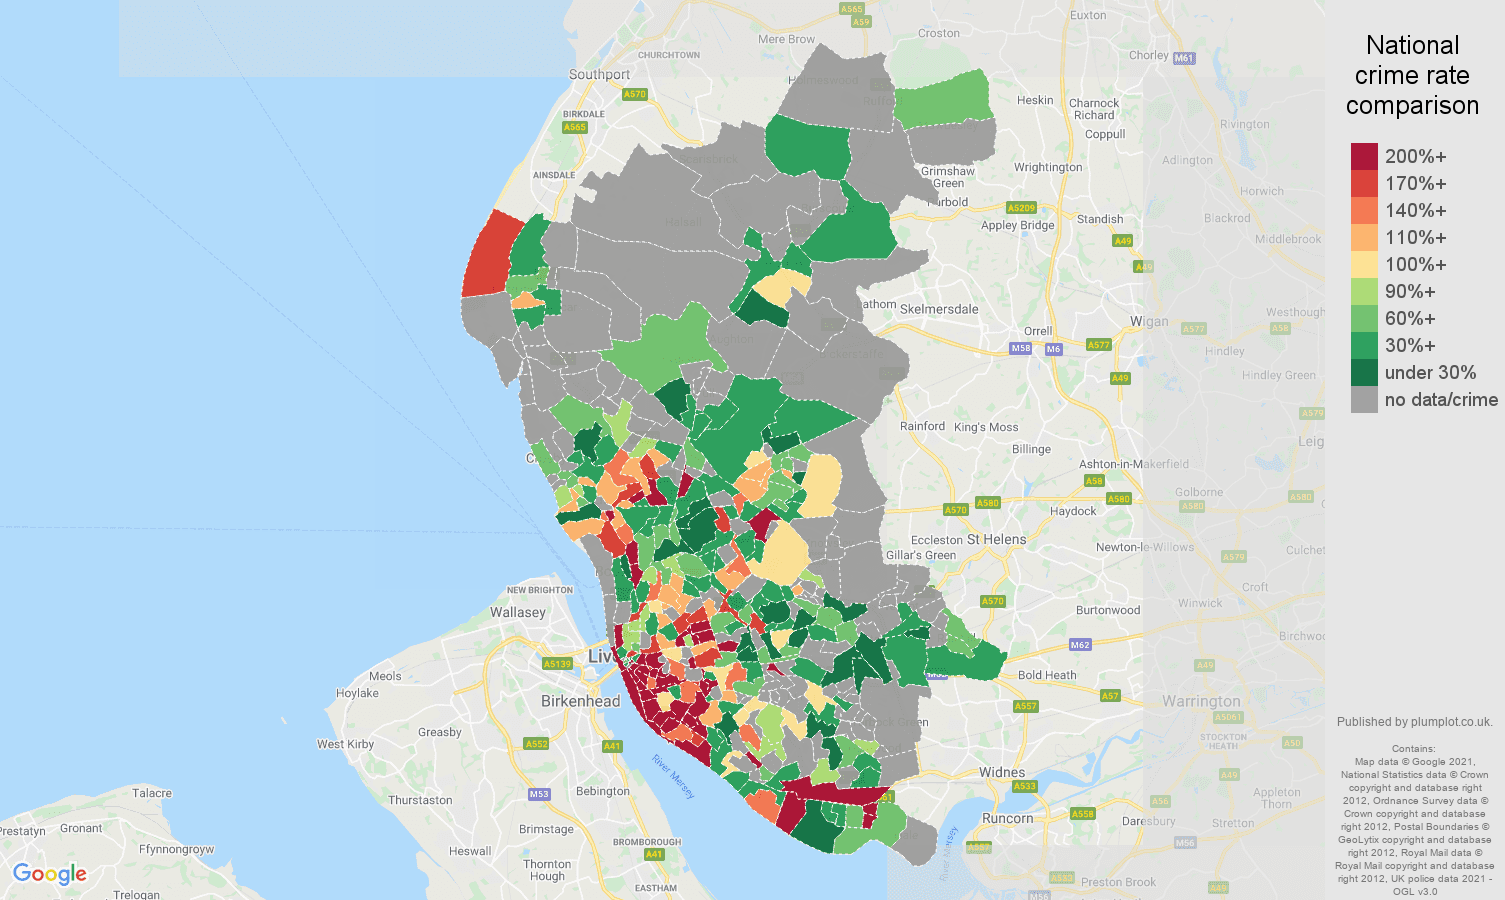 Liverpool bicycle theft crime rate comparison map